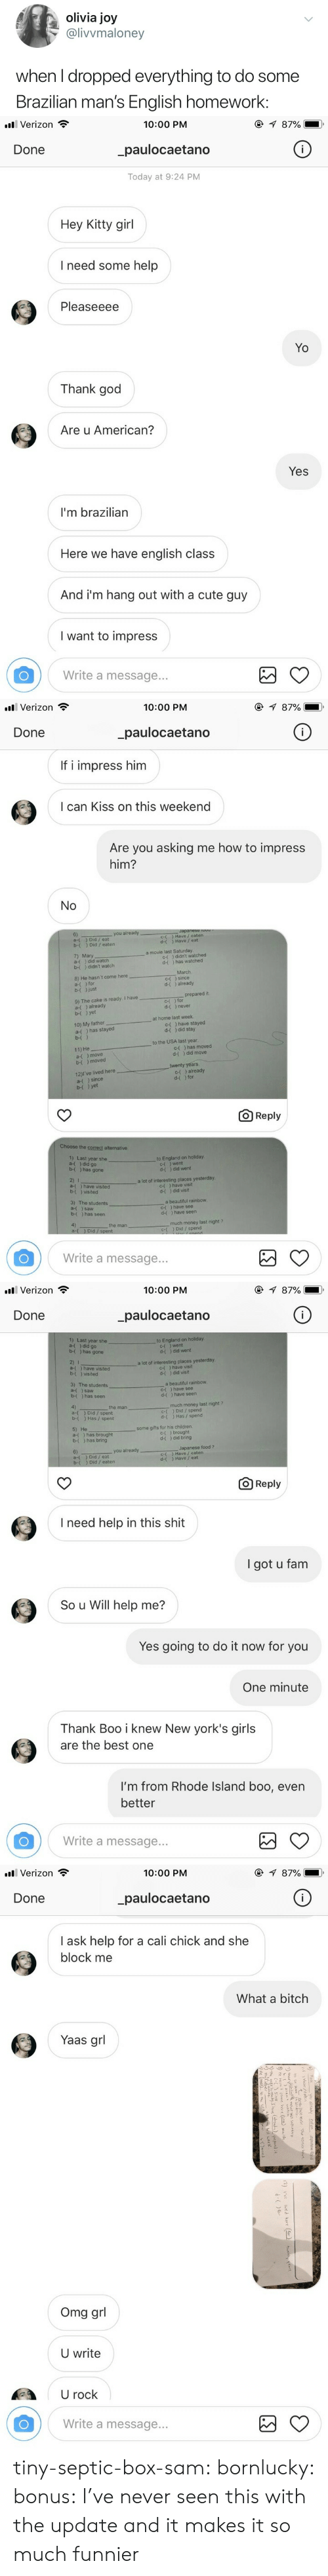 cali: olivia joy  @livvmaloney  when I dropped everything to do some  Brazilian man's English homework:   all Verizon  10:00 PM  _paulocaetano  Today at 9:24 PM  Done  Hey Kitty girl  I need some help  Pleaseeee  Yo  Thank god  Are u American?  Yes  I'm brazilian  Here we have english class  And i'm hang out with a cute guy  I want to impress  Write a message...   . Verizon  10:00 PM  Done  paulocaetano  If i impress him  I can Kiss on this weekend  Are you asking me how to impress  him?  6)  a-( ) Did / eat  b-( ) Did / eaten  you  c-( ) Have /eaten  d-( ) Have / eat  a movie last Saturday  7) Mary  a-( ) did watch  b-( ) didn't watch  C-(  d-(  ) didn't watched  ) has watched  March  8) He hasn't come here  d-( ) already  b-( )just  9) The cake is ready I have  a-( ) already  b-( ) yet  prepared it  { ) for  d-( ) never  at home last week  10) My father  a-( ) has stayed  have stayed  d-(  ) did stay  to the USA last year  11) He  a-( ) move  b-( ) moved  C-( ) has moved  d-( ) did move  twenty years.  12)r've lived here  a-(since  b-() yet  c-( ) already  d-( ) for  O Reply  Choose the correct alternative  1) Last year she  a-( )did go  b-( ) has gone  to England on holiday  c-( ) went  d-( ) did went  2) I  a-( ) have visited  b-( ) visited  a lot of interesting places yesterday  C-( ) have visit  d-( ) did visit  3) The students  a-( ) saw  b-( ) has seen  a beautiful rainbow  c-( ) have see  d-( ) have seen  4)  the man  much money last night ?  c-() Did / spend  Write a message...   . Verizon  10:00 PM  Done  paulocaetano  1) Last year she  a-() did go  b-( ) has gone  to England on holiday  c-( ) went  d-( ) did went  2) 1  a-( ) have visited  b-( ) visited  a lot of interesting places yesterday  c-《 ) have visit  d-( ) did visit  3) The students  a-( ) saw  b-( ) has seen  a beautiful rainbow  c-f ) have see  d-( ) have seen  much money last night?  ) Did / spend  ) Has / spend  the man  a-( ) Did / spent  b-( ) Has / spent  c-(  d-(  some gifts for his chi